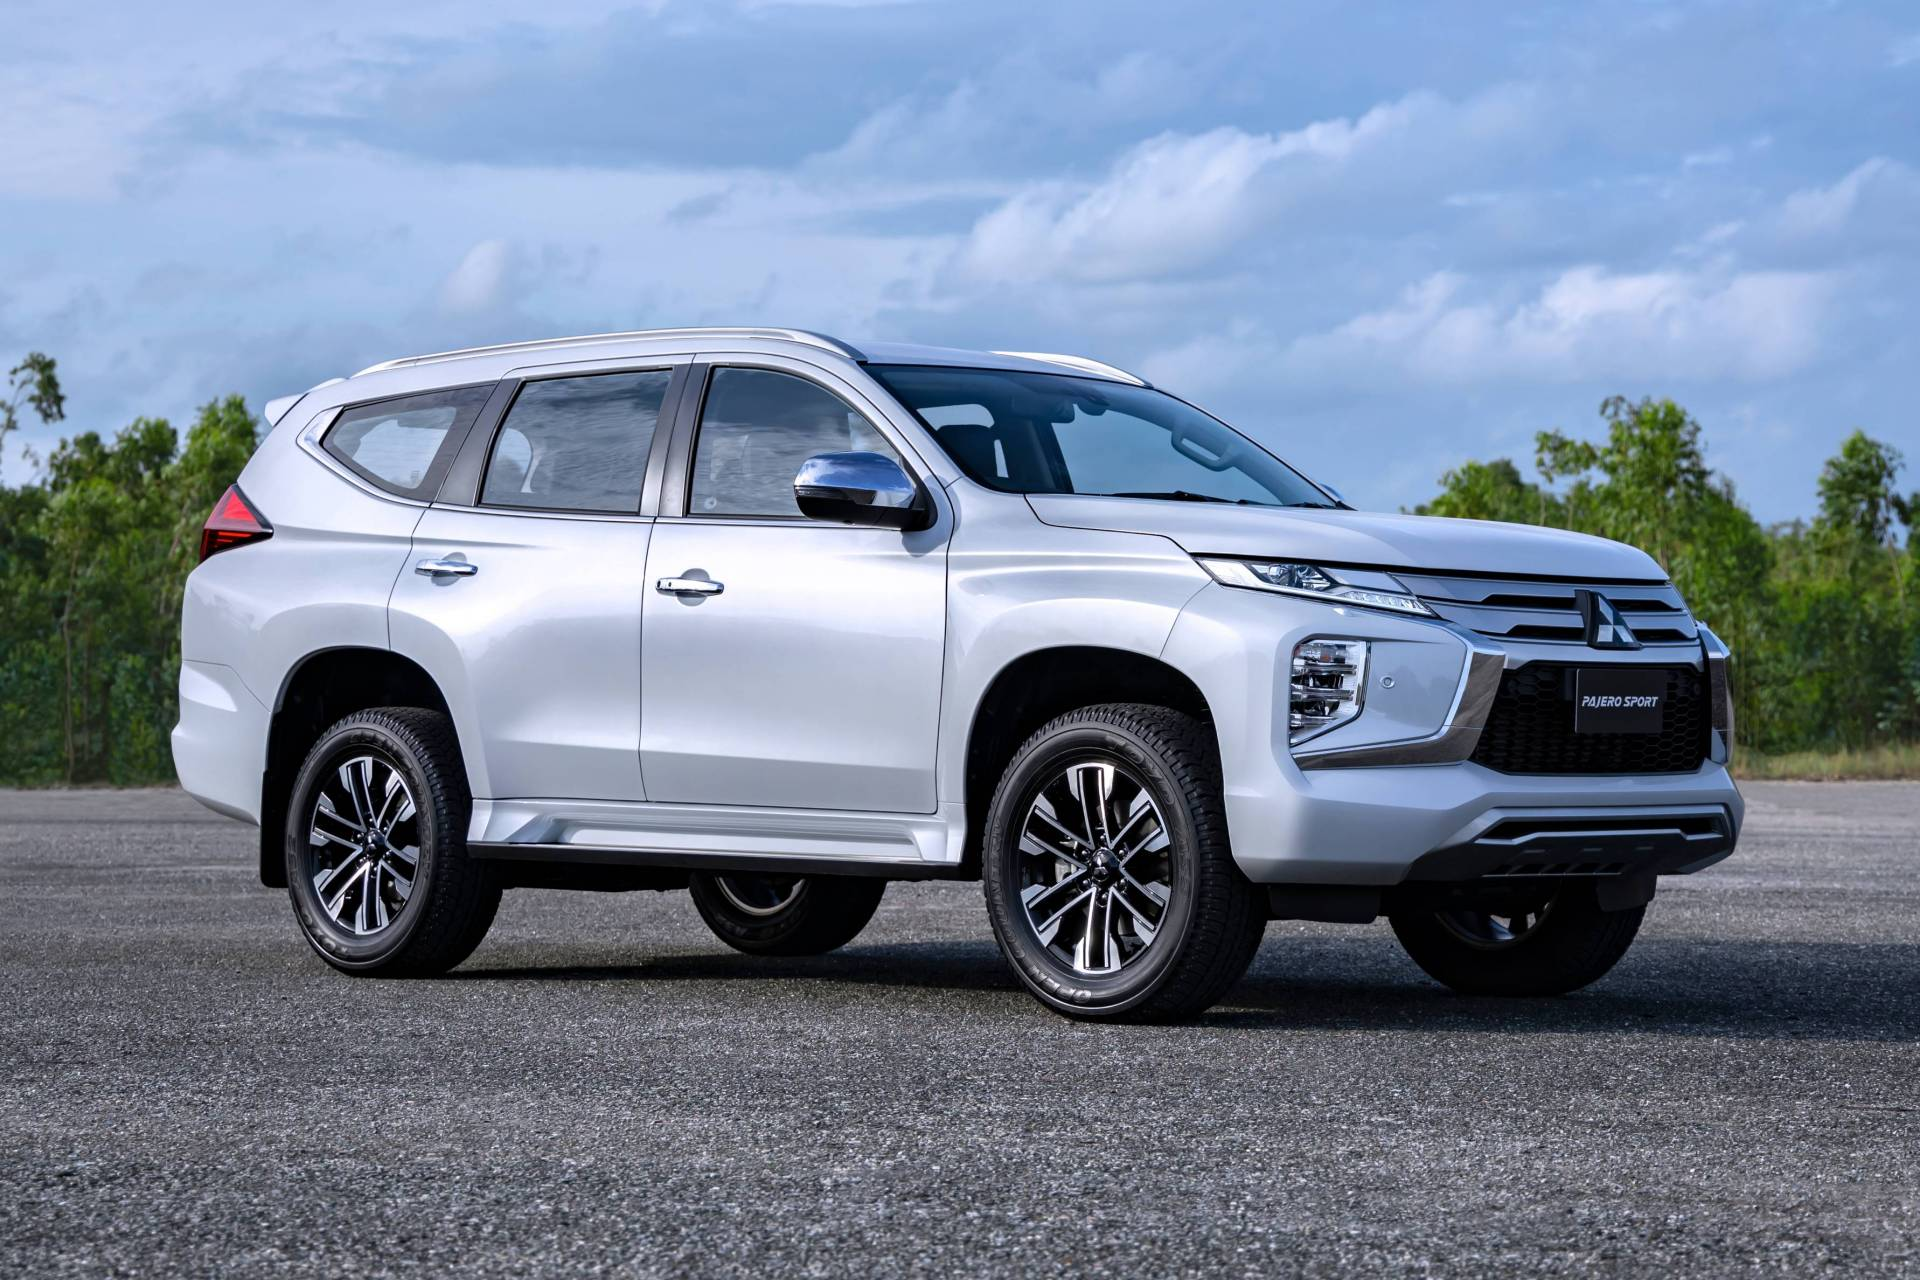 2020 mitsubishi pajero sport debuts with updated design